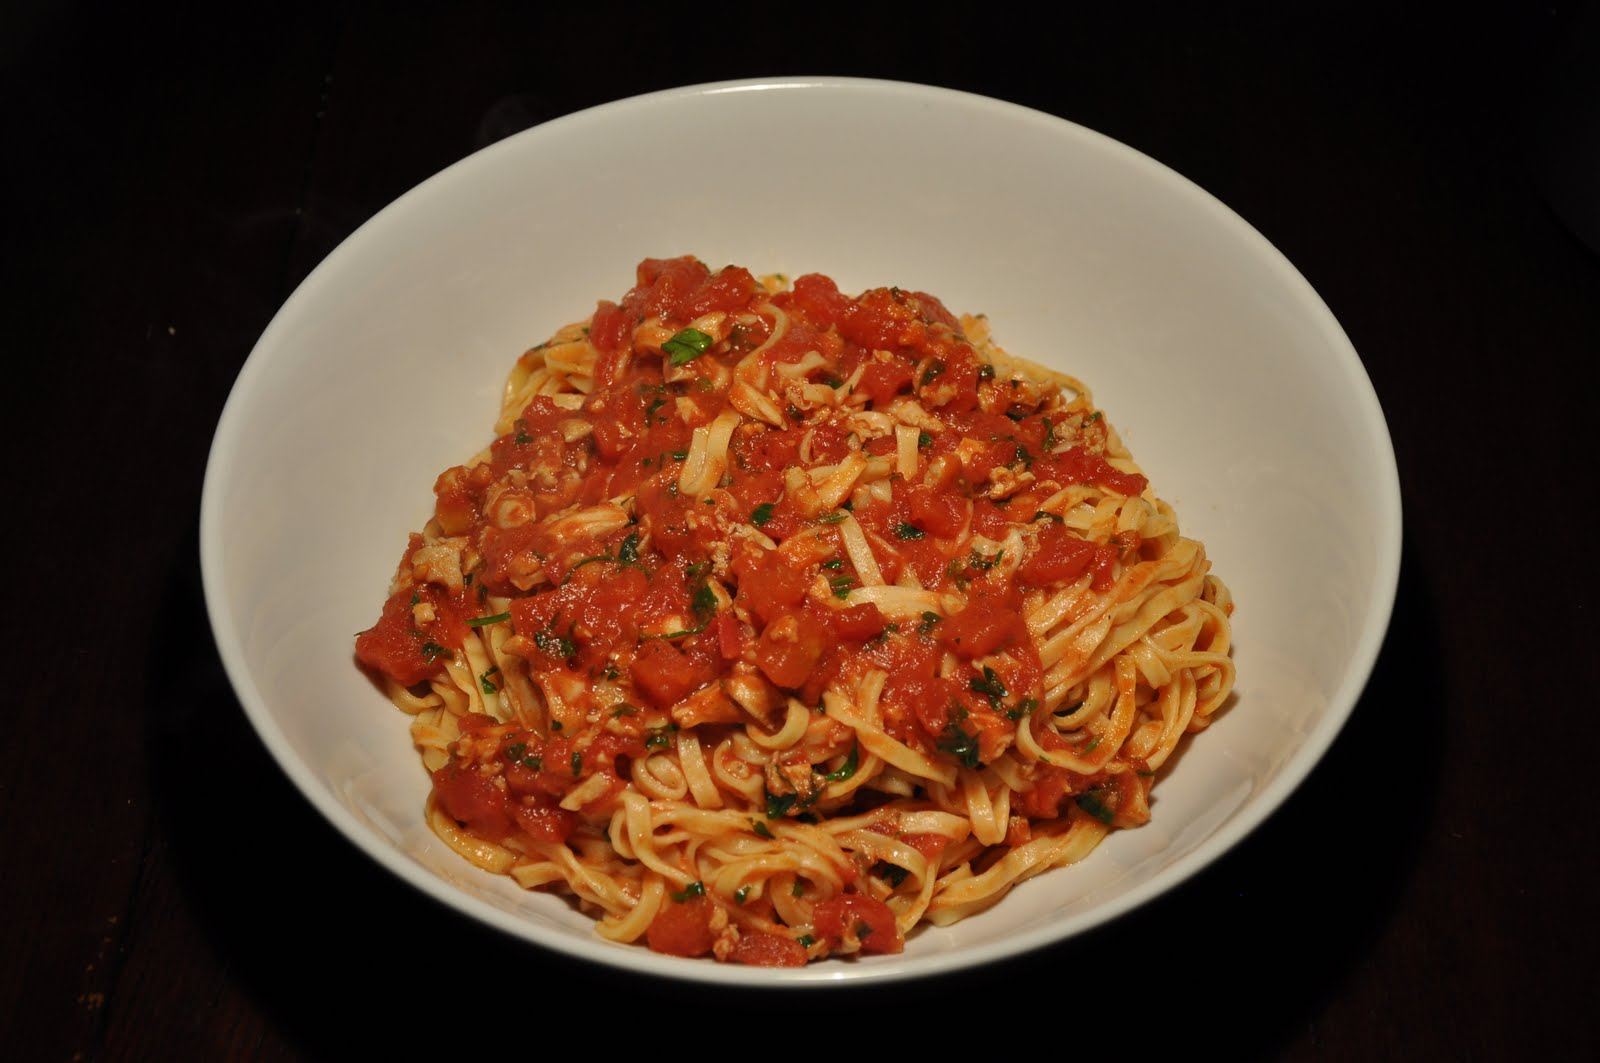 Slice of Rice: Linguine with Red Clam Sauce